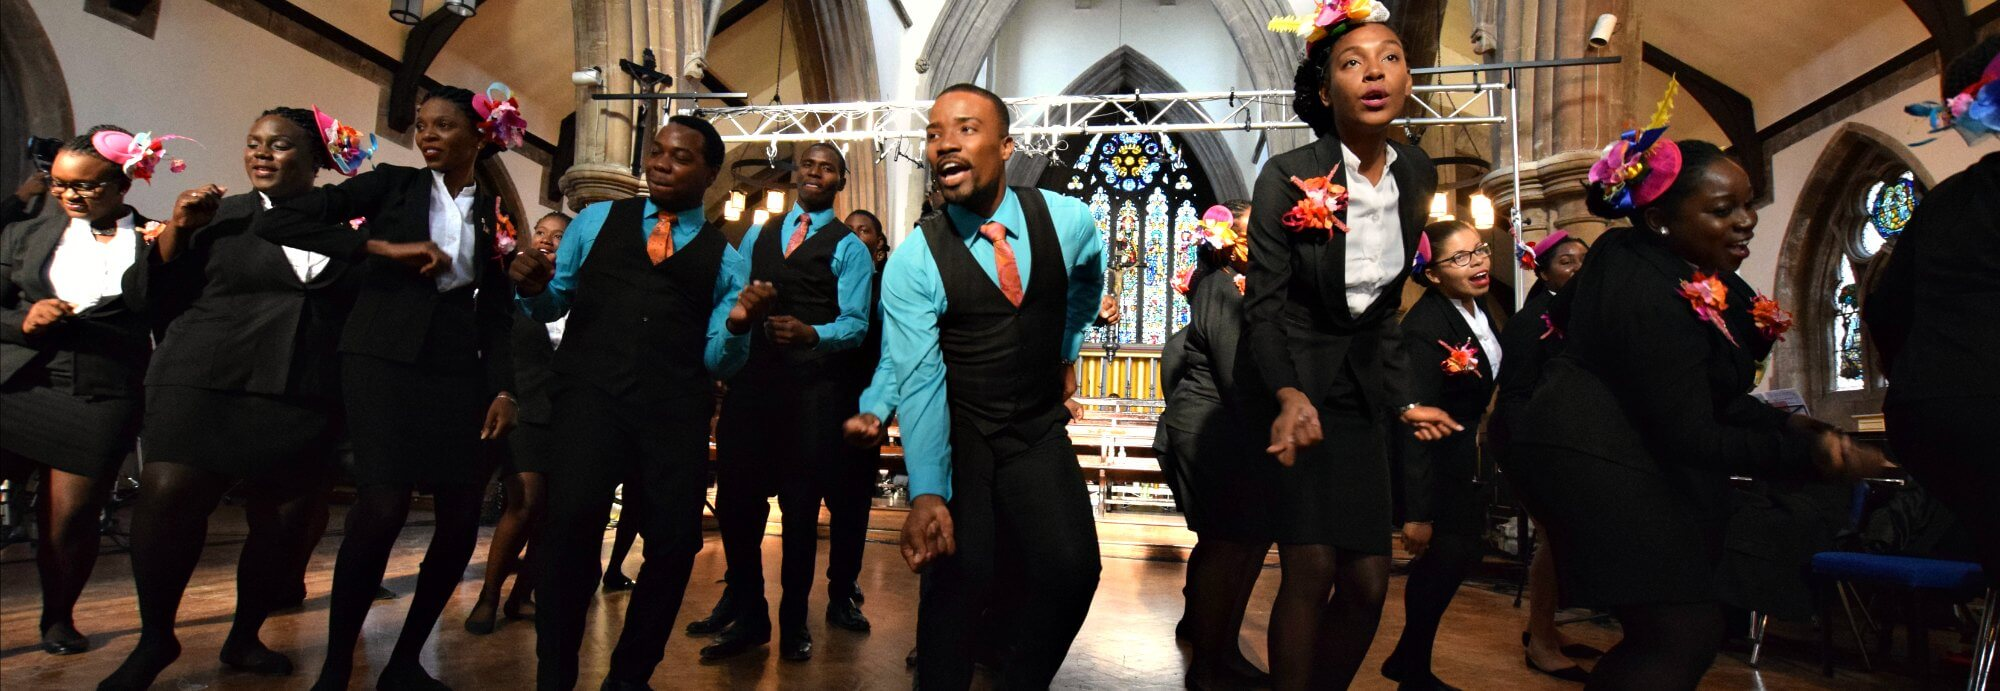 Antigua and Barbuda National Youth Choir - St Matthias Church N16